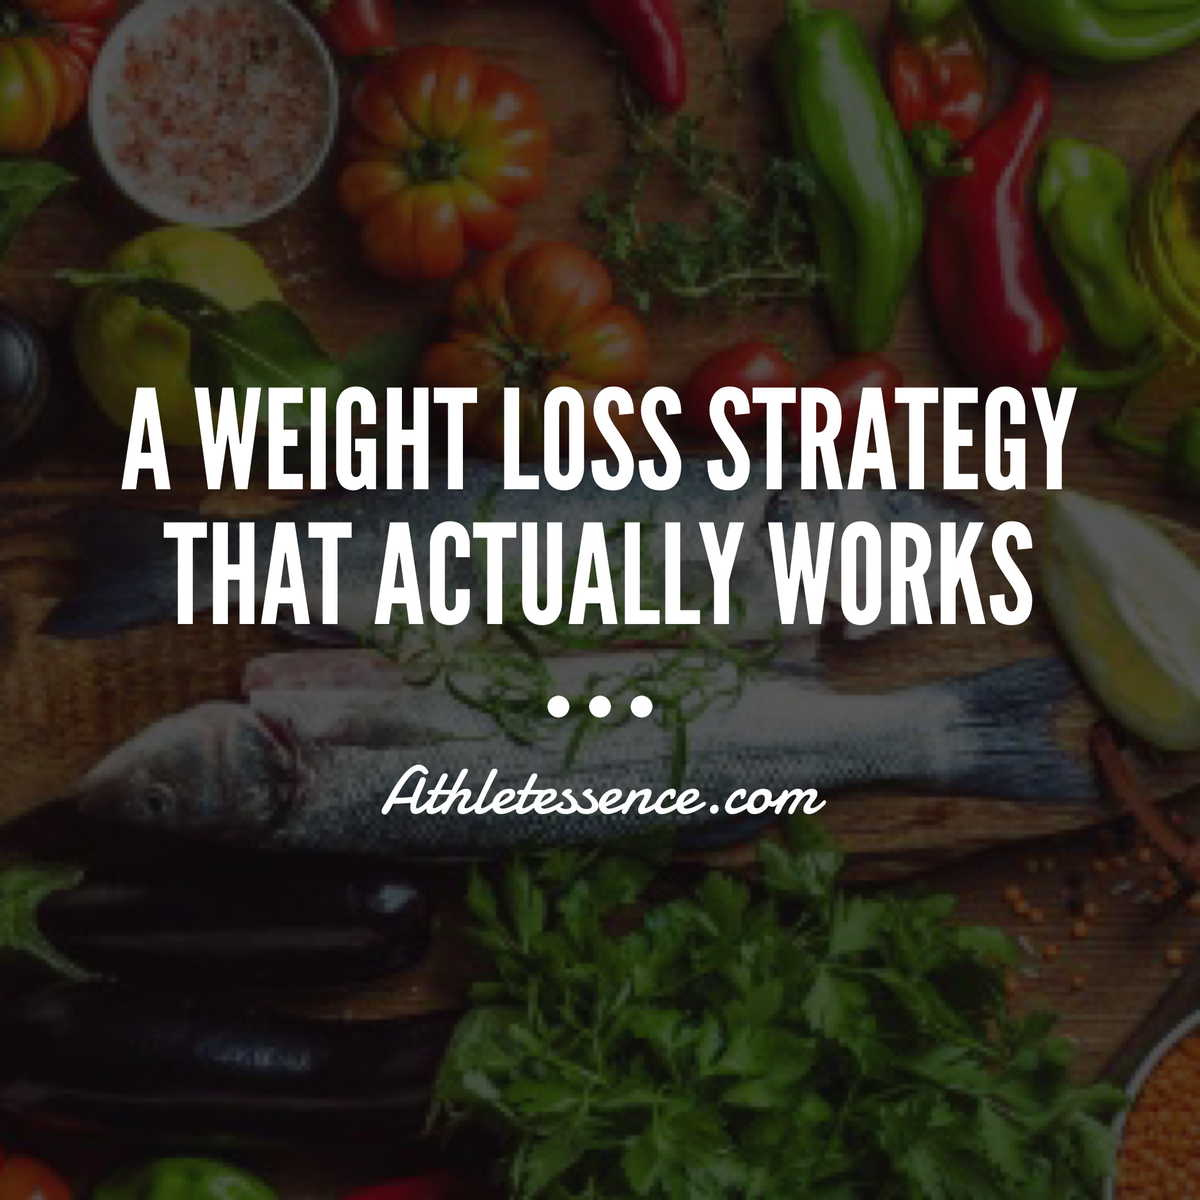 A Weight Loss Strategy That Actually Works